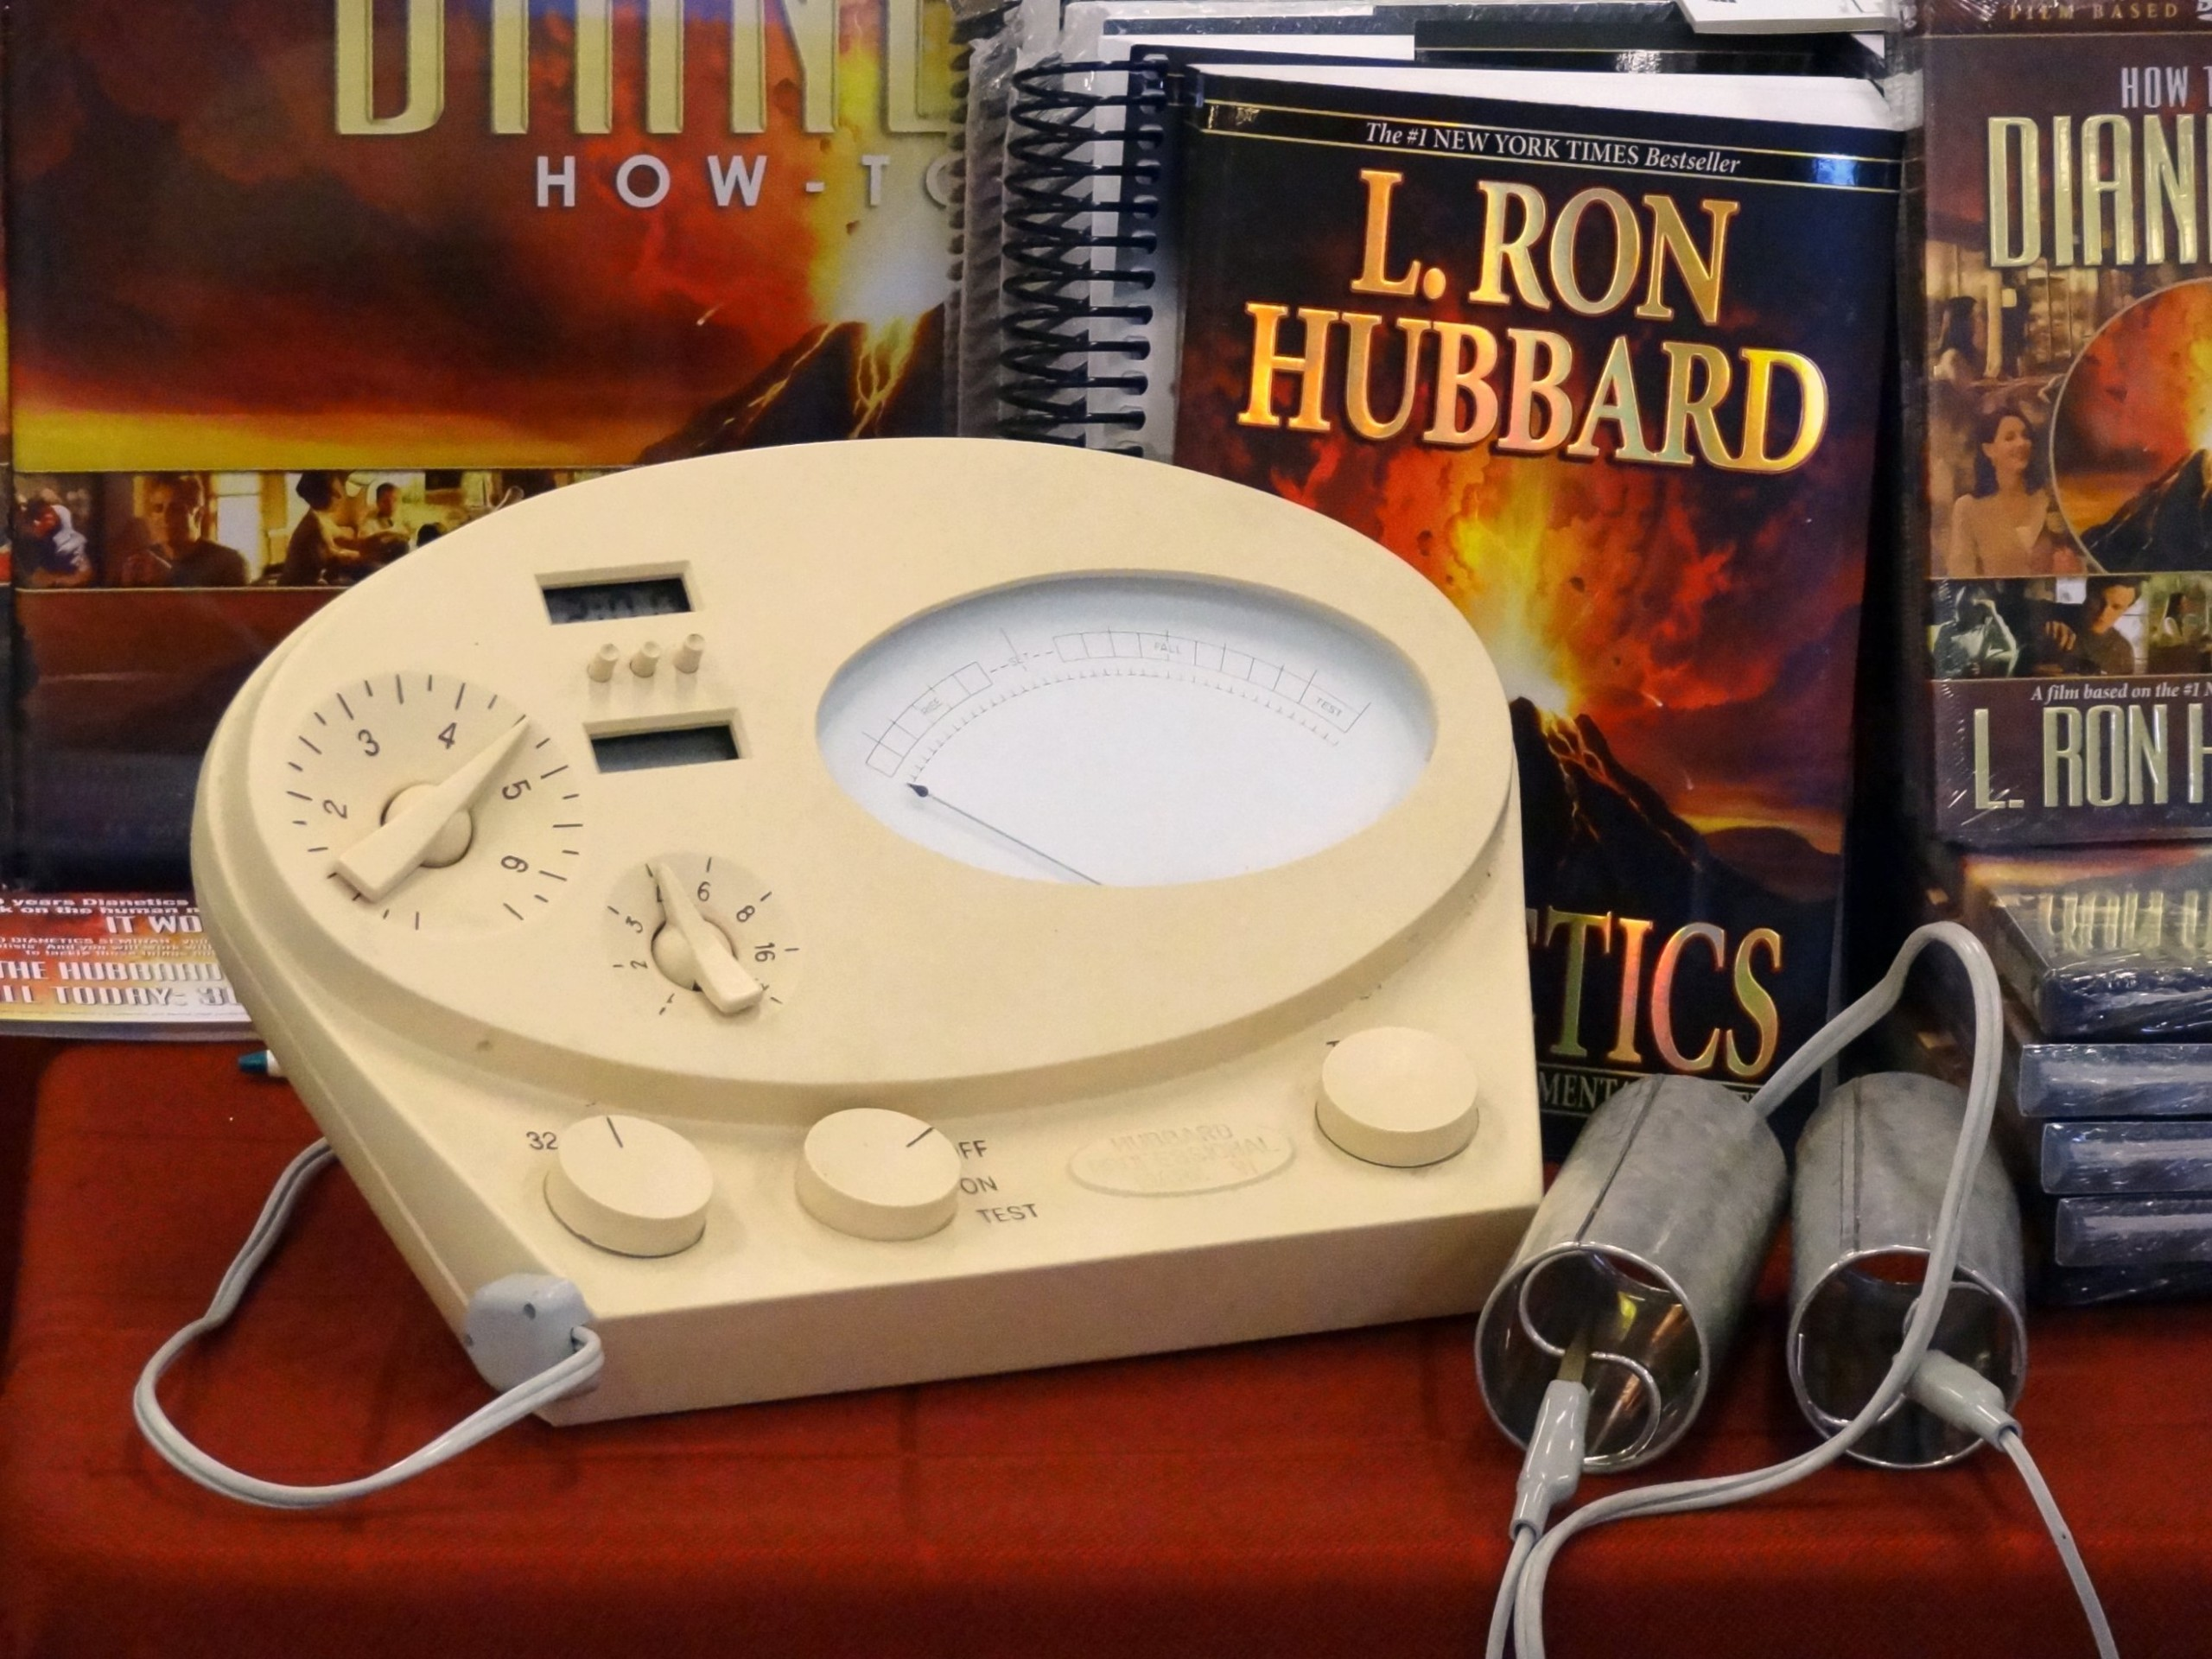 scientology books and e-meter